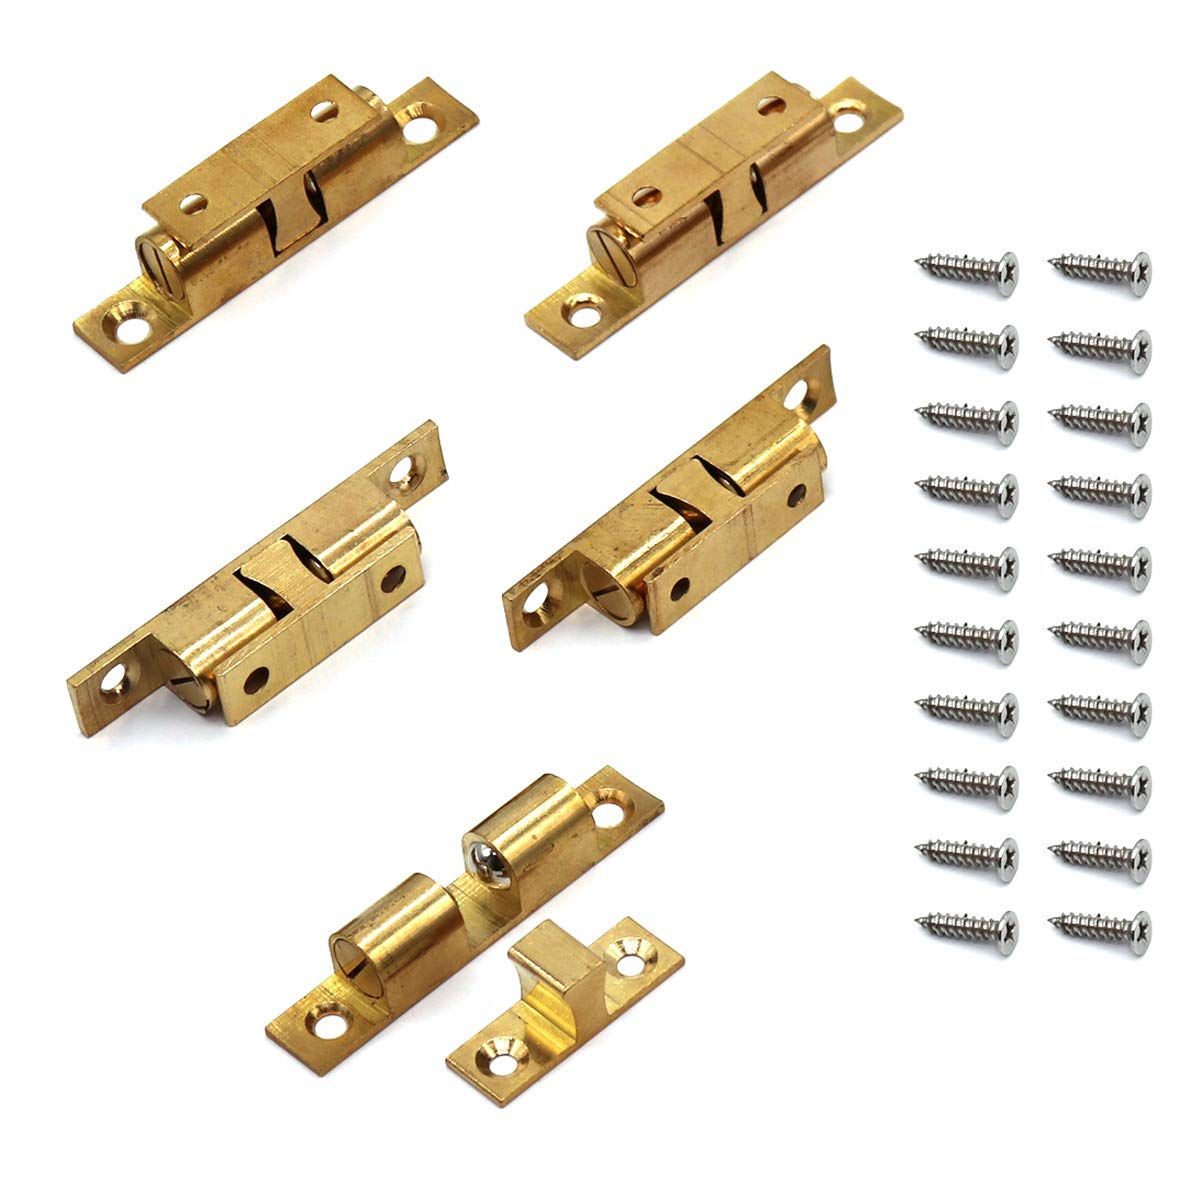 70MM Ball Catch Ekatoo Set of 5 Solid Brass Adjustable Double Ball Tension Roller Catch Latch Hardware Fitting for Cabinet Closet Furniture Door with Screws - 2.8 inch (L) x 0.5 inch(W) x 0.5 inch(T)